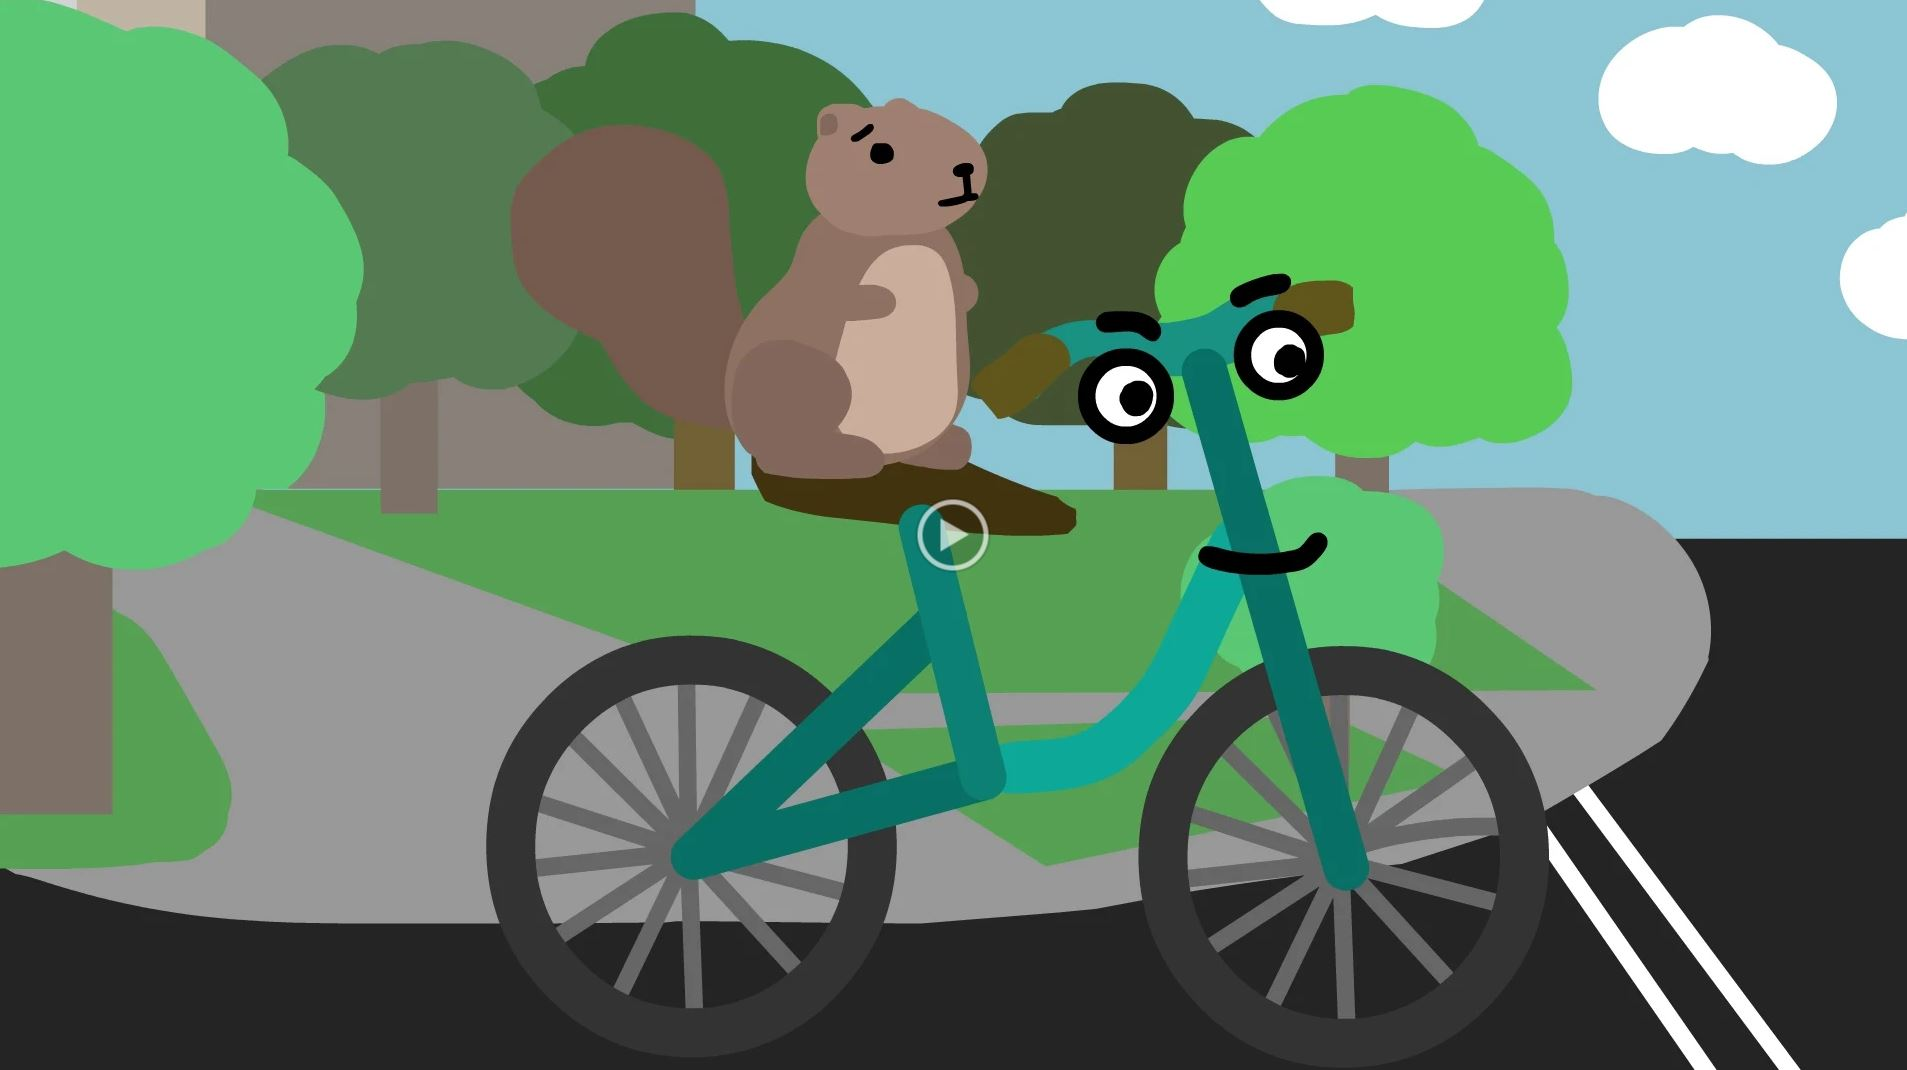 Screenshot of mascot, Merle, on bike.